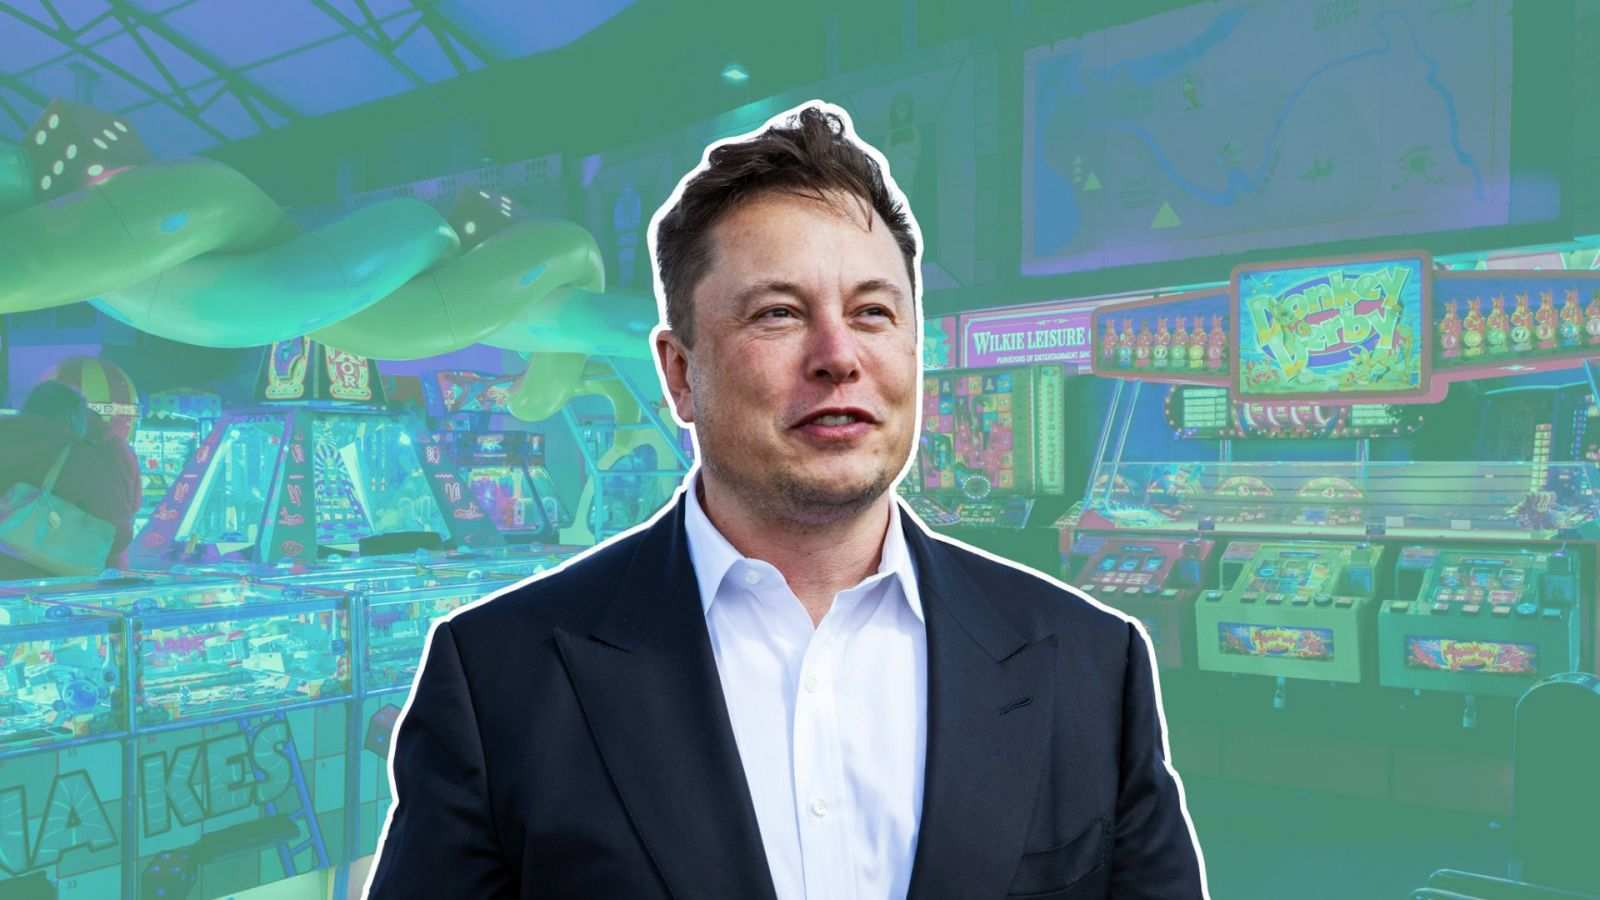 Elon Musk Overtakes Bill Gates to Become the Second-Richest Person in the World